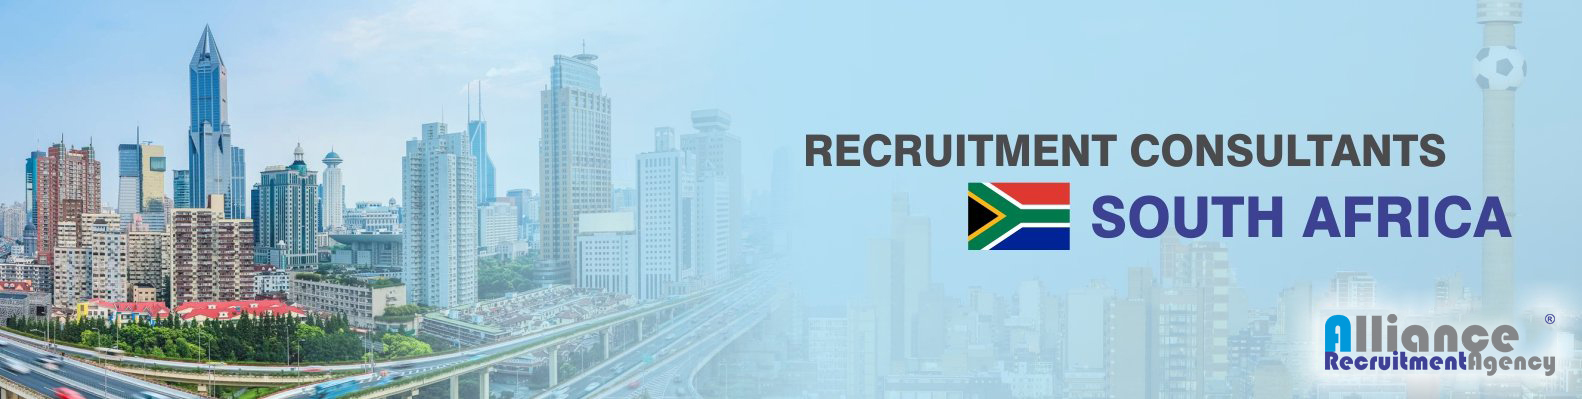 recruitment consultants in south africa